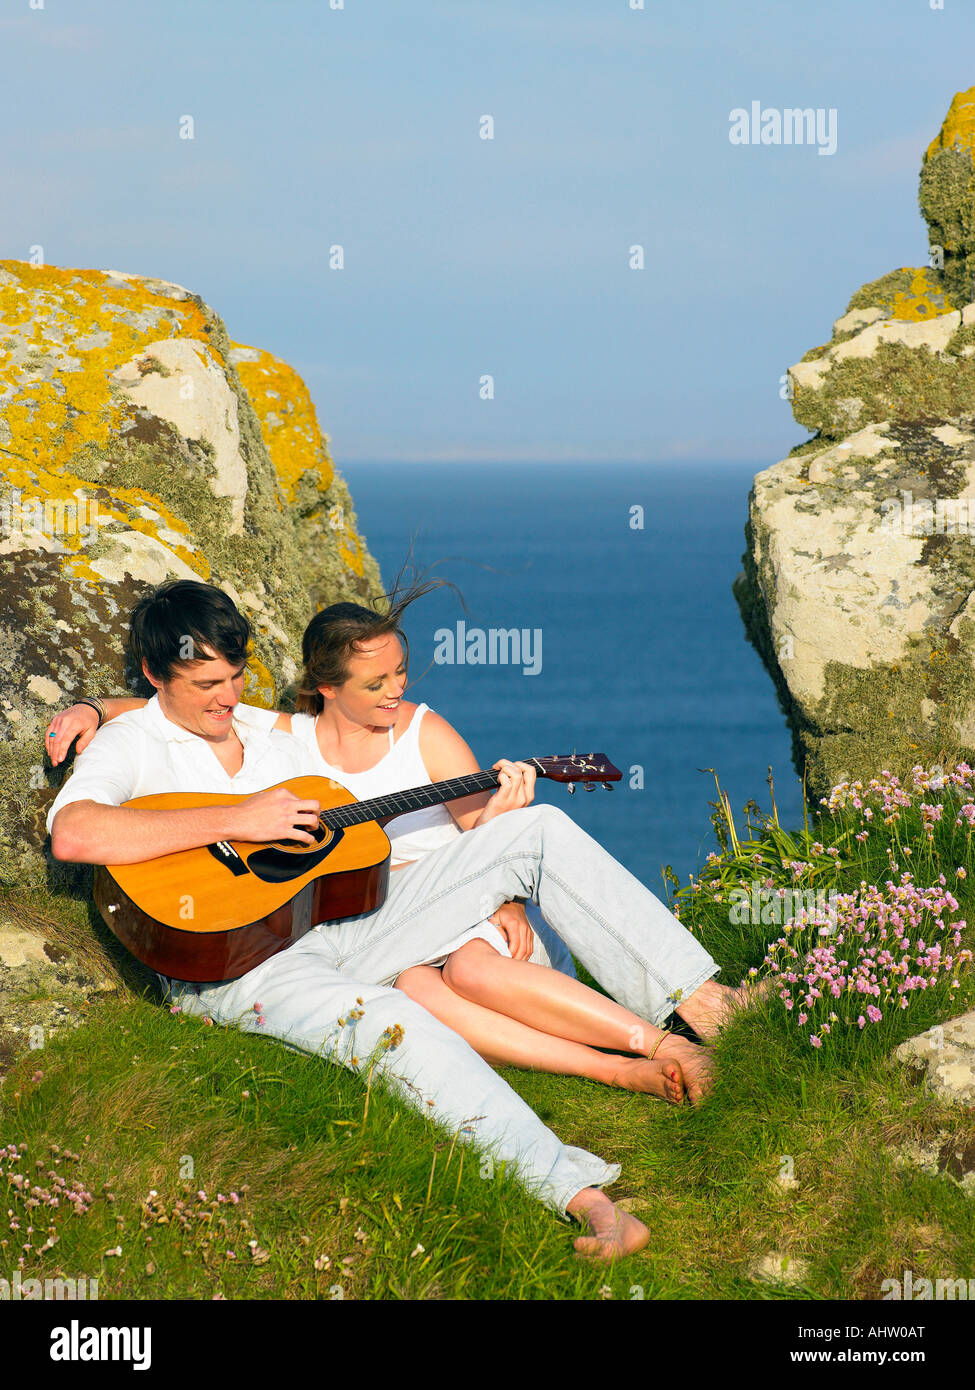 Young couple on a cliff playing guitar. - Stock Image